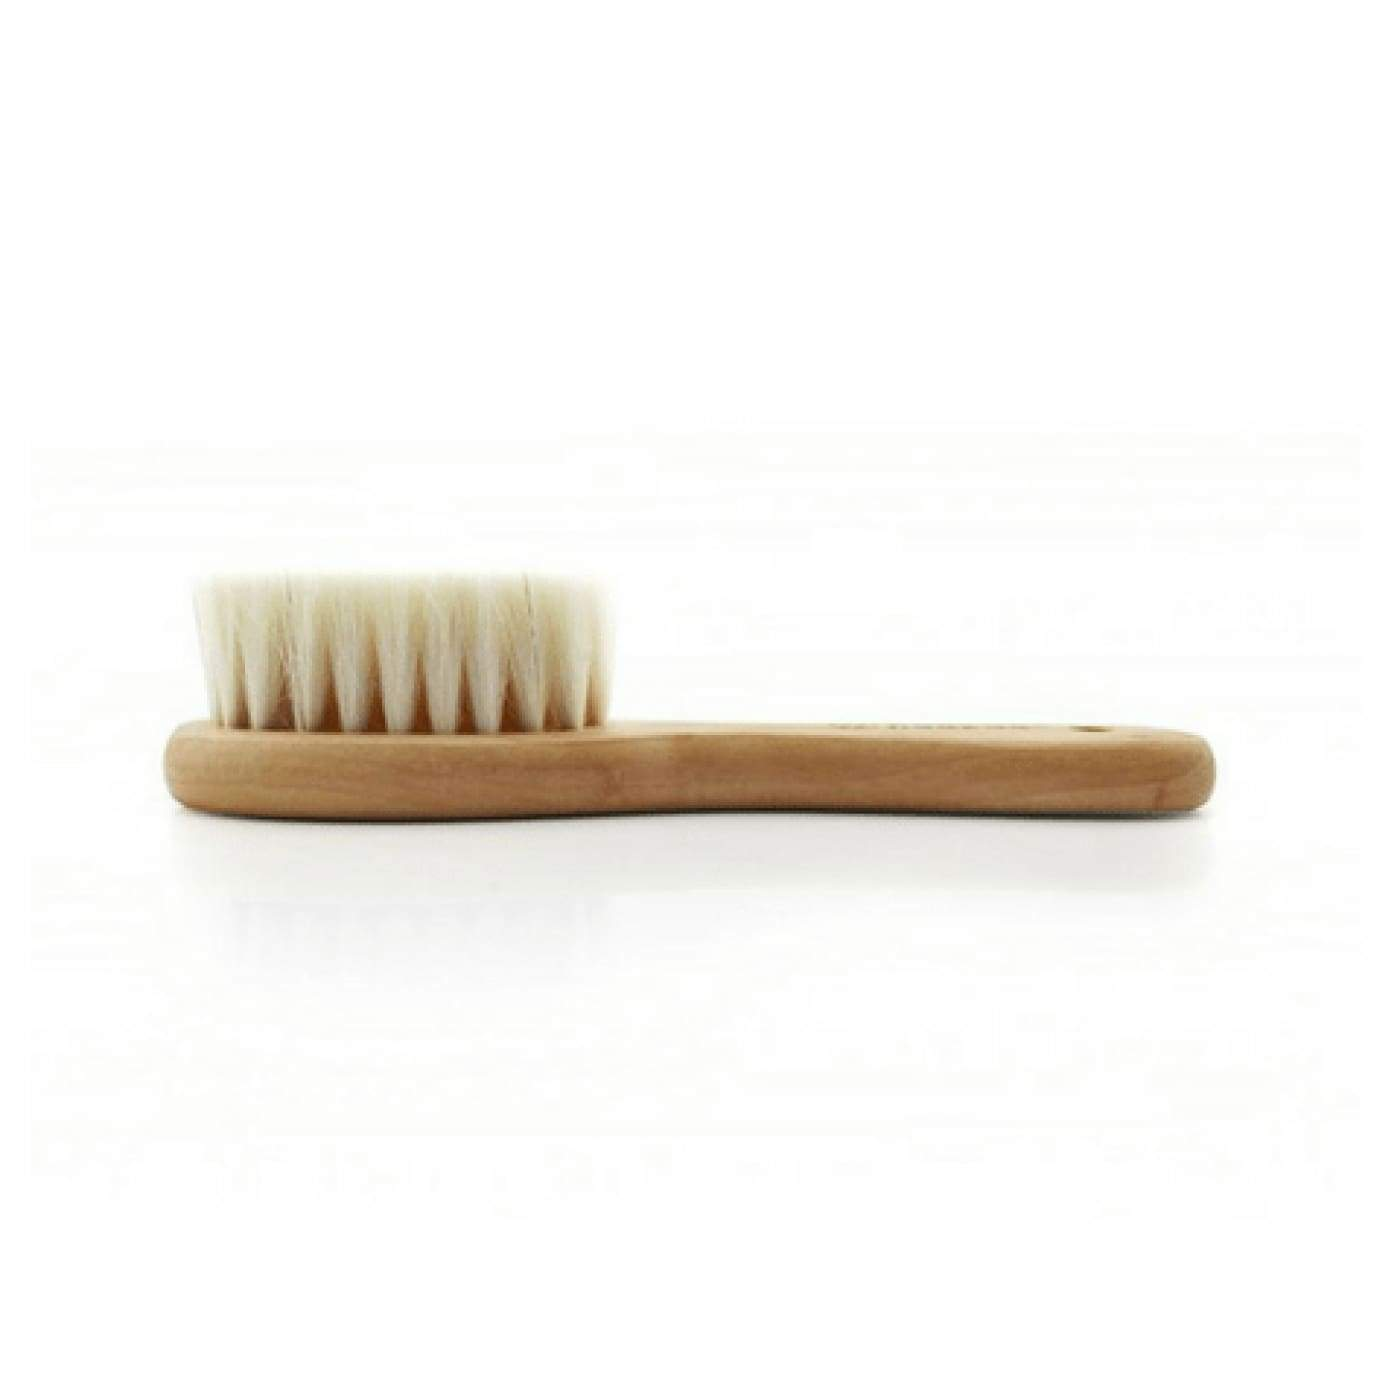 Haakaa Goats Wool Hair Brush & Comb Set - BATHTIME & CHANGING - GROOMING/HYGIENE/COSMETICS